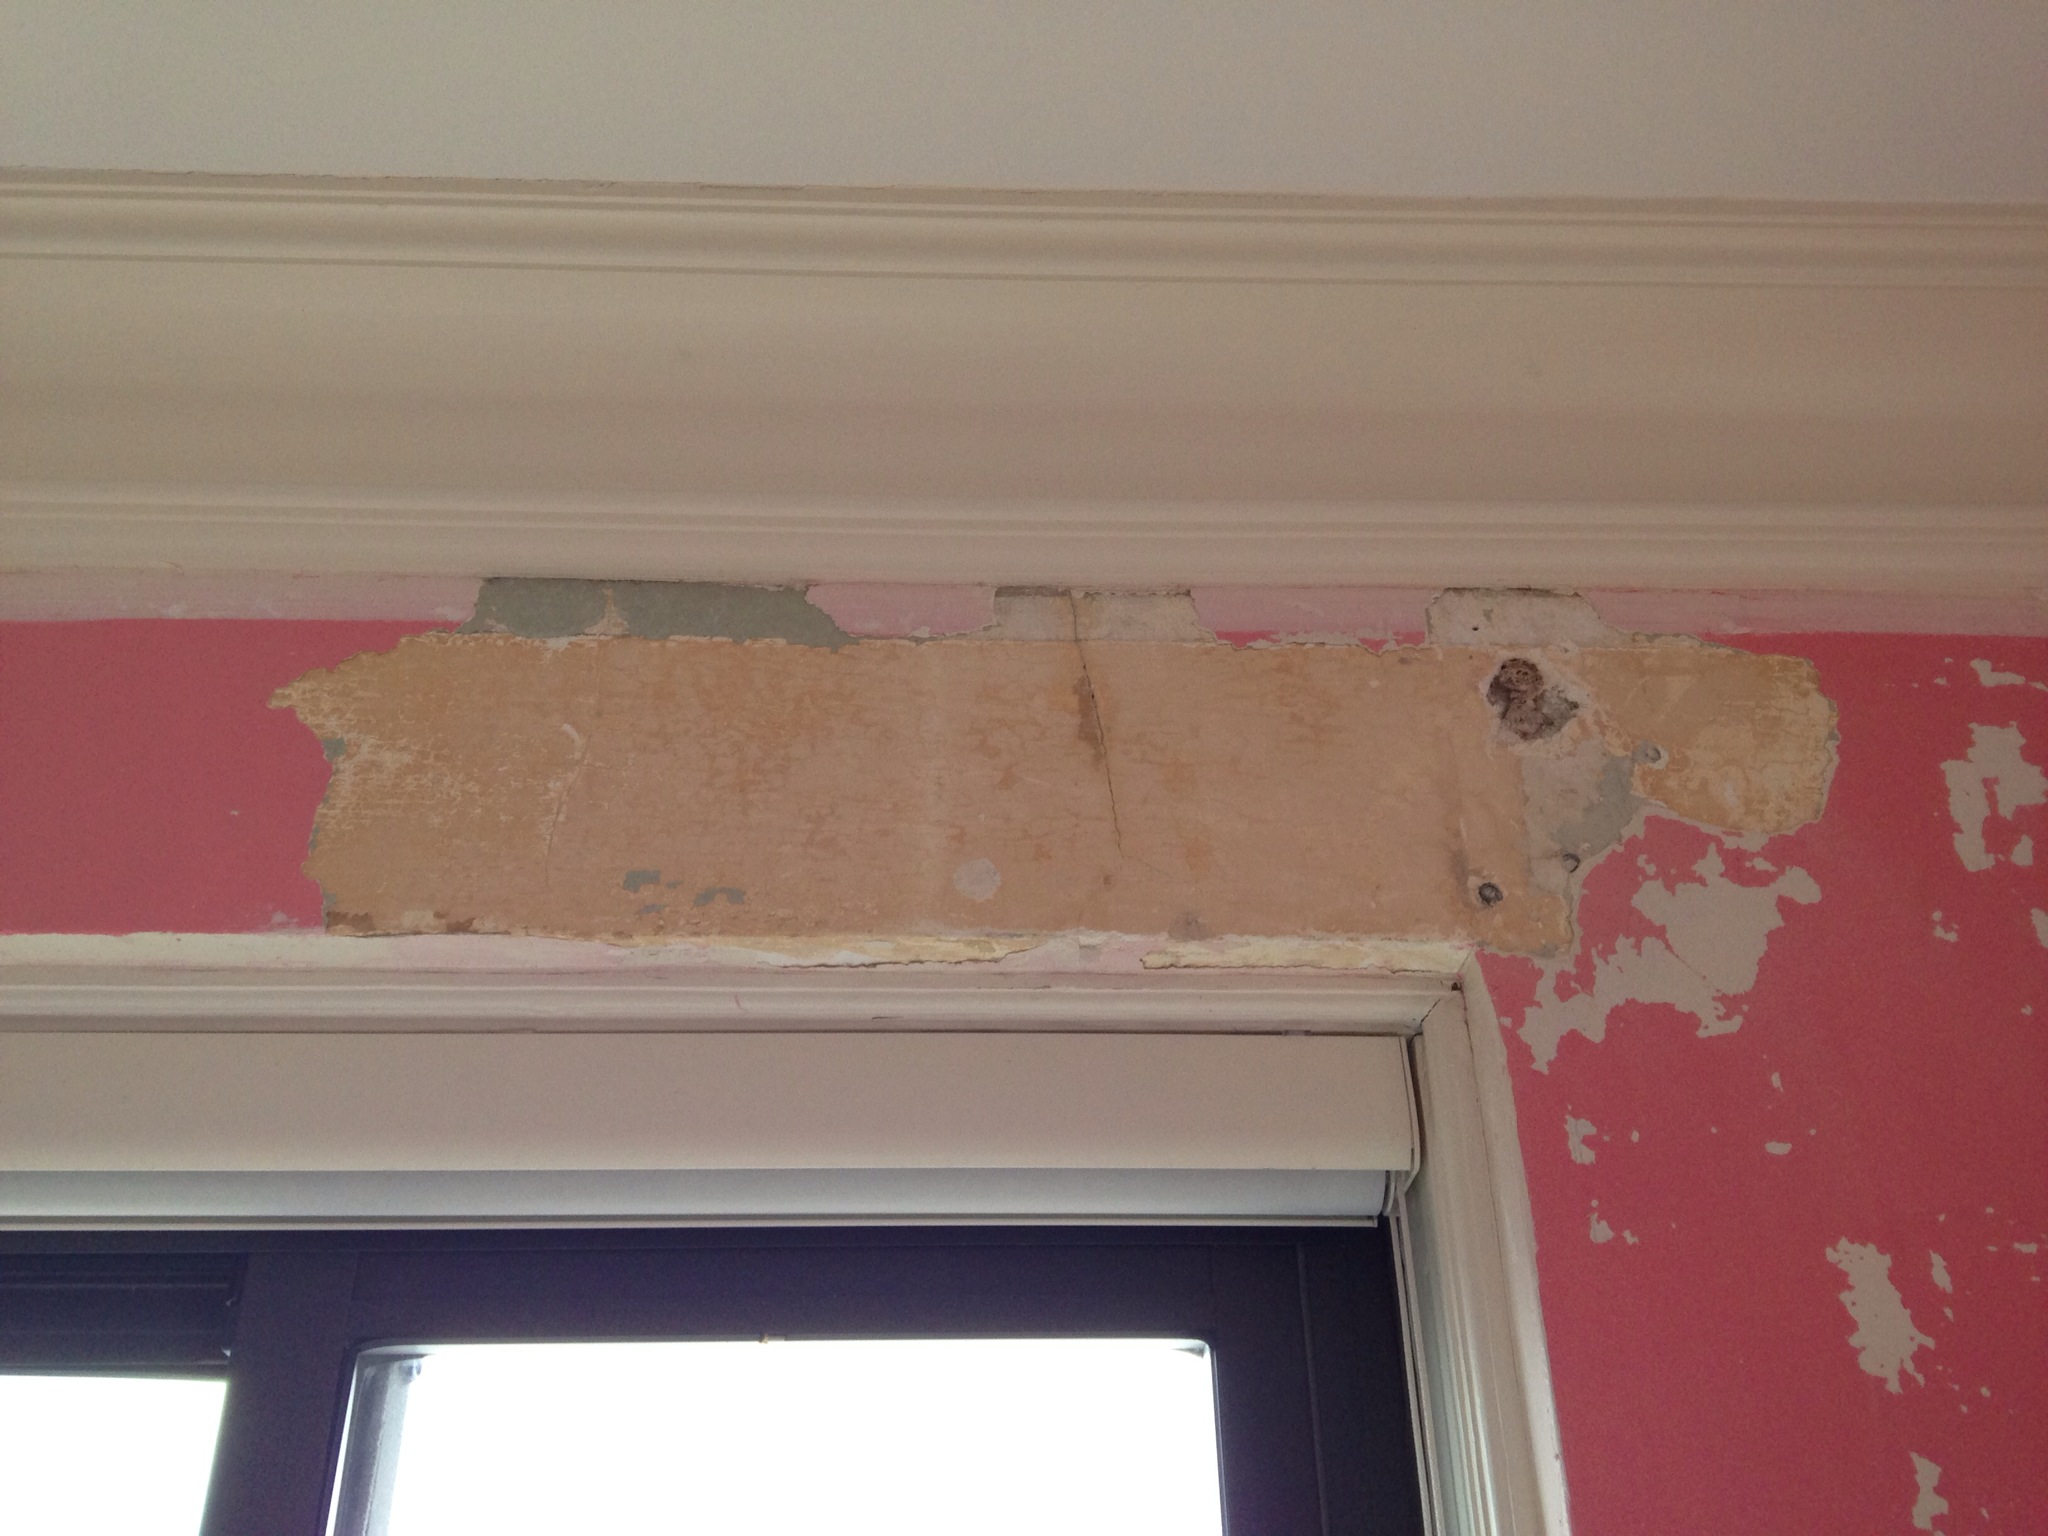 ... wallpaper-damage-project-kennedy-painting-st-louis-2-